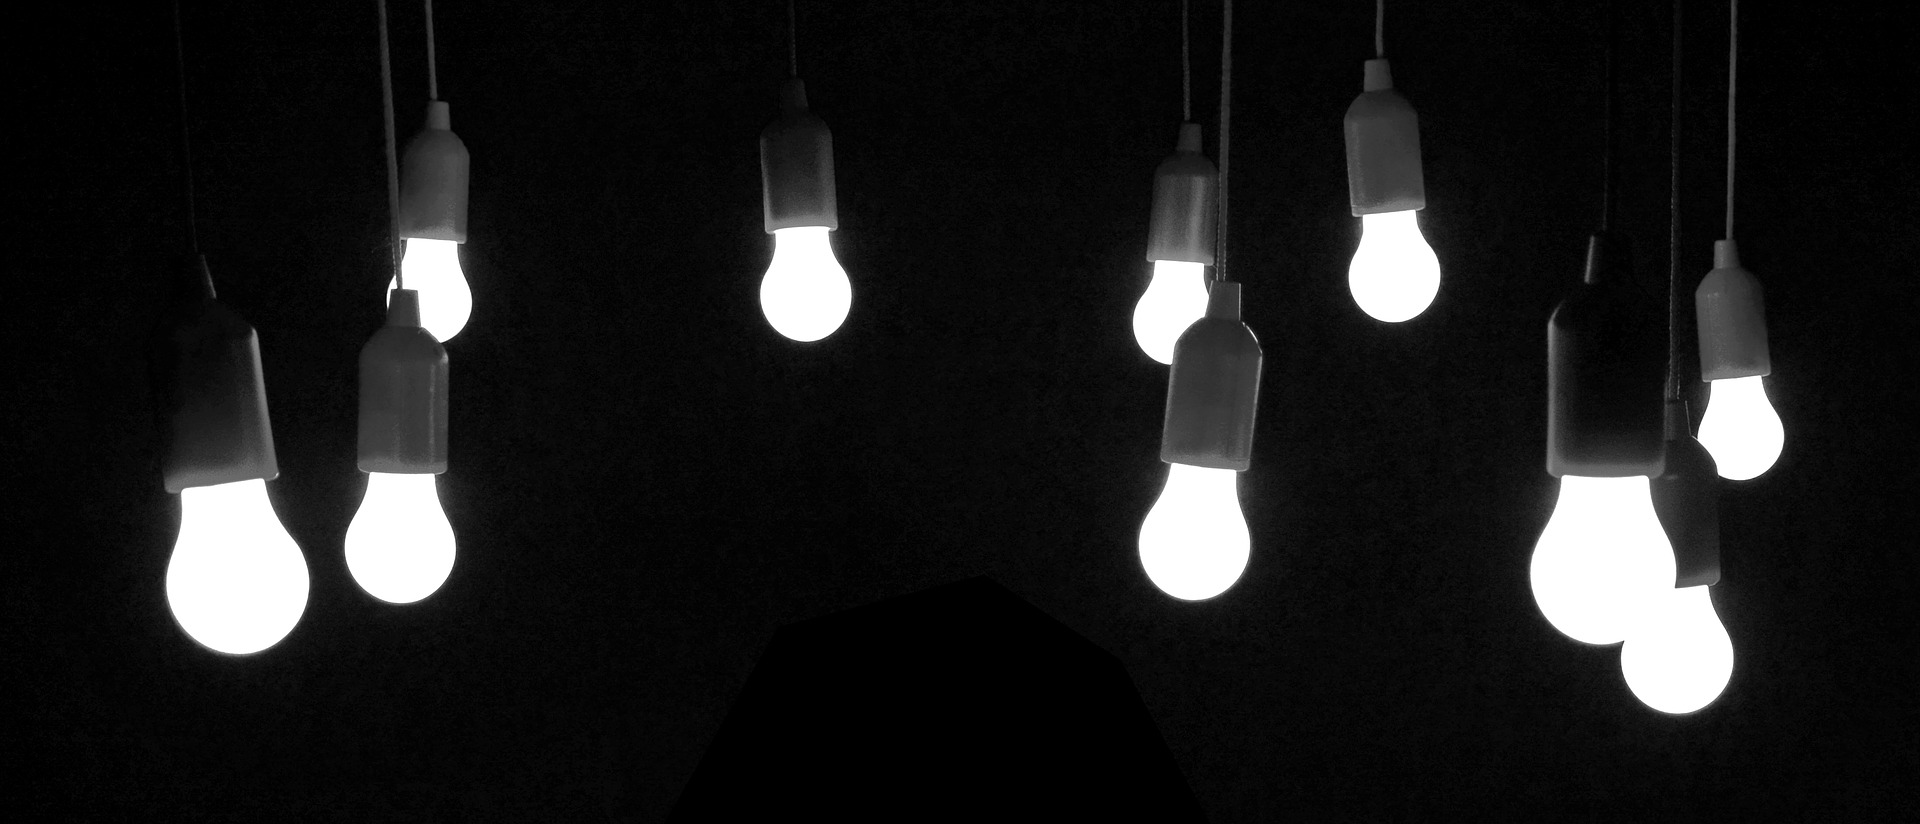 light-bulbs-1764490_1920